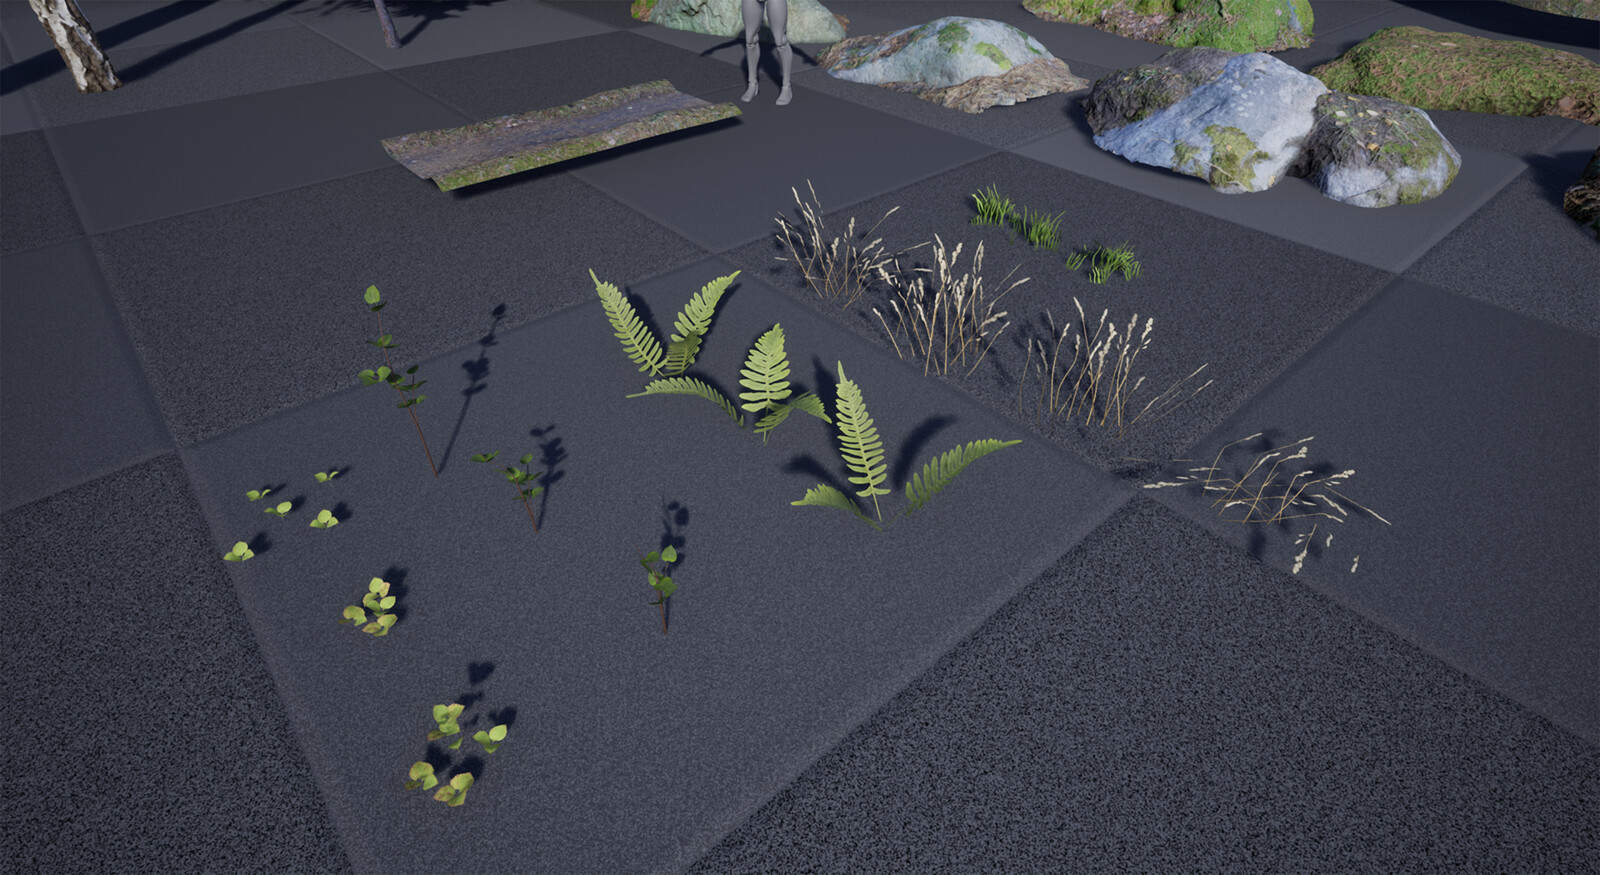 The collection of foliage used in the scene.